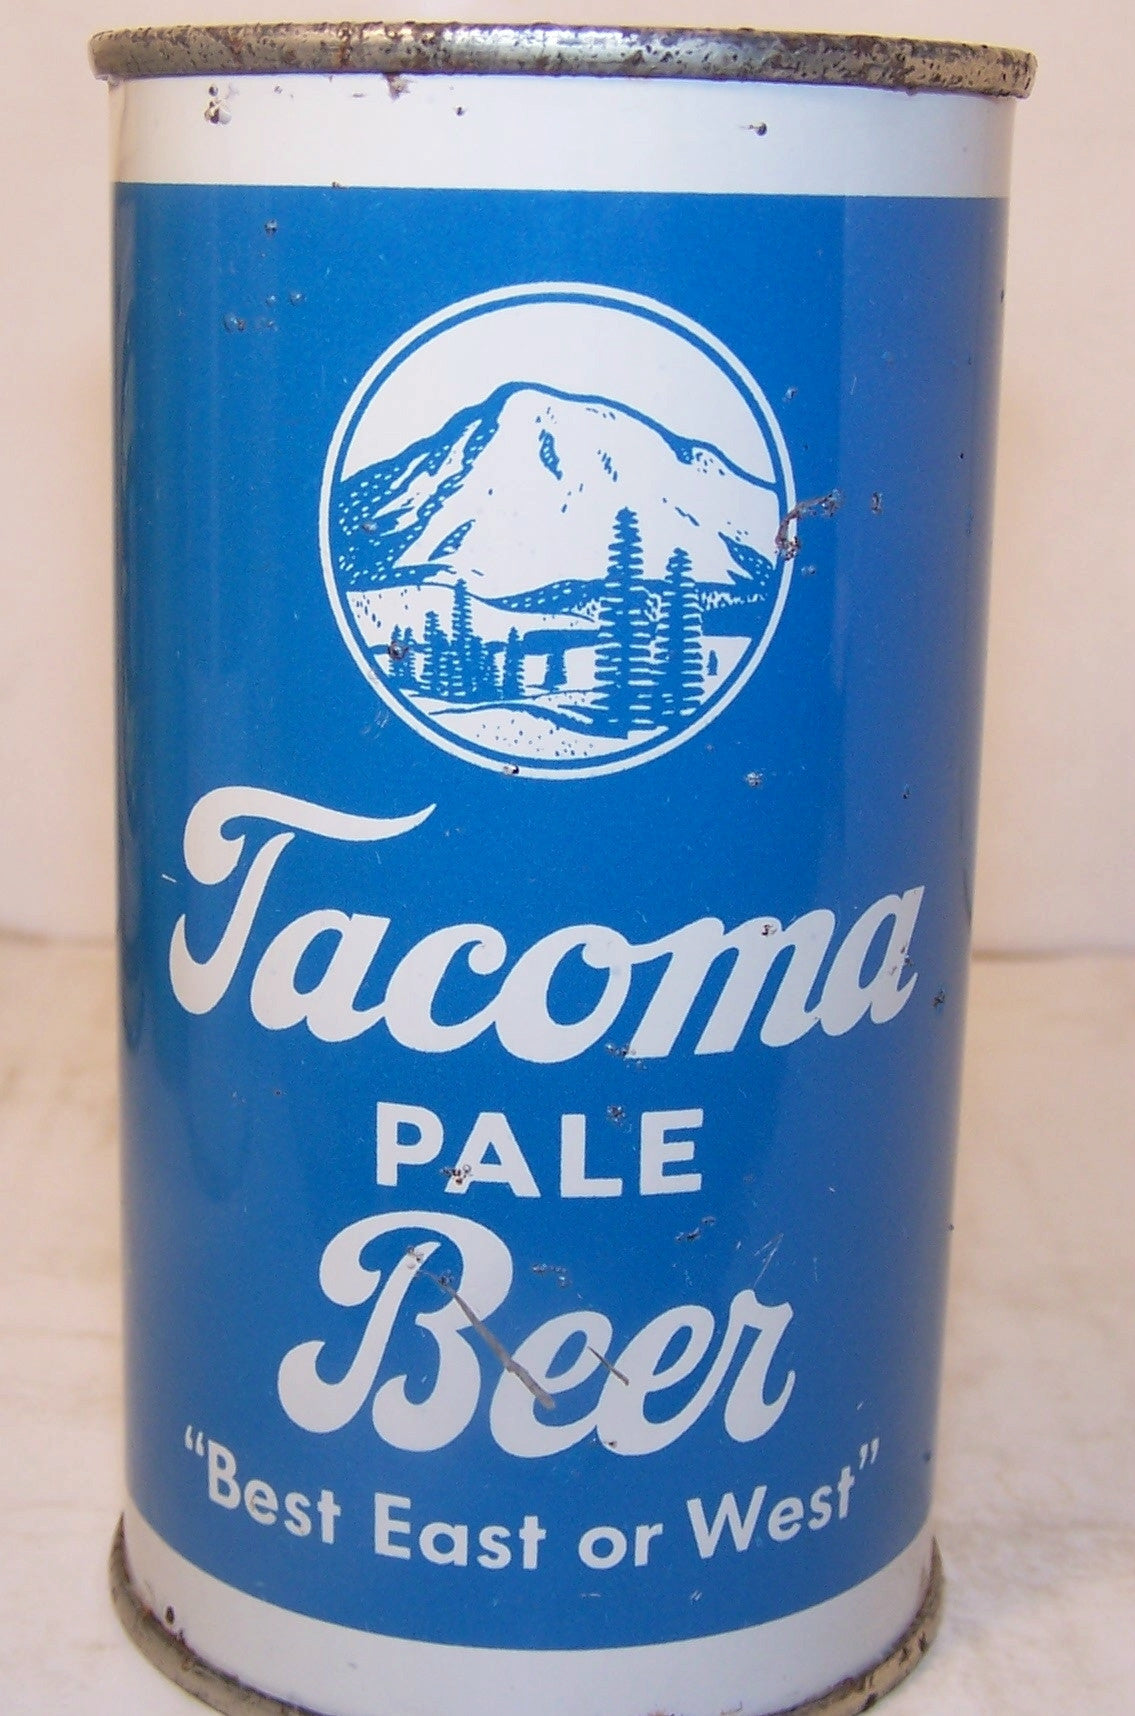 Tacoma Pale Beer, USBC 138-7, Grade 1/1- Sold 2/10/15